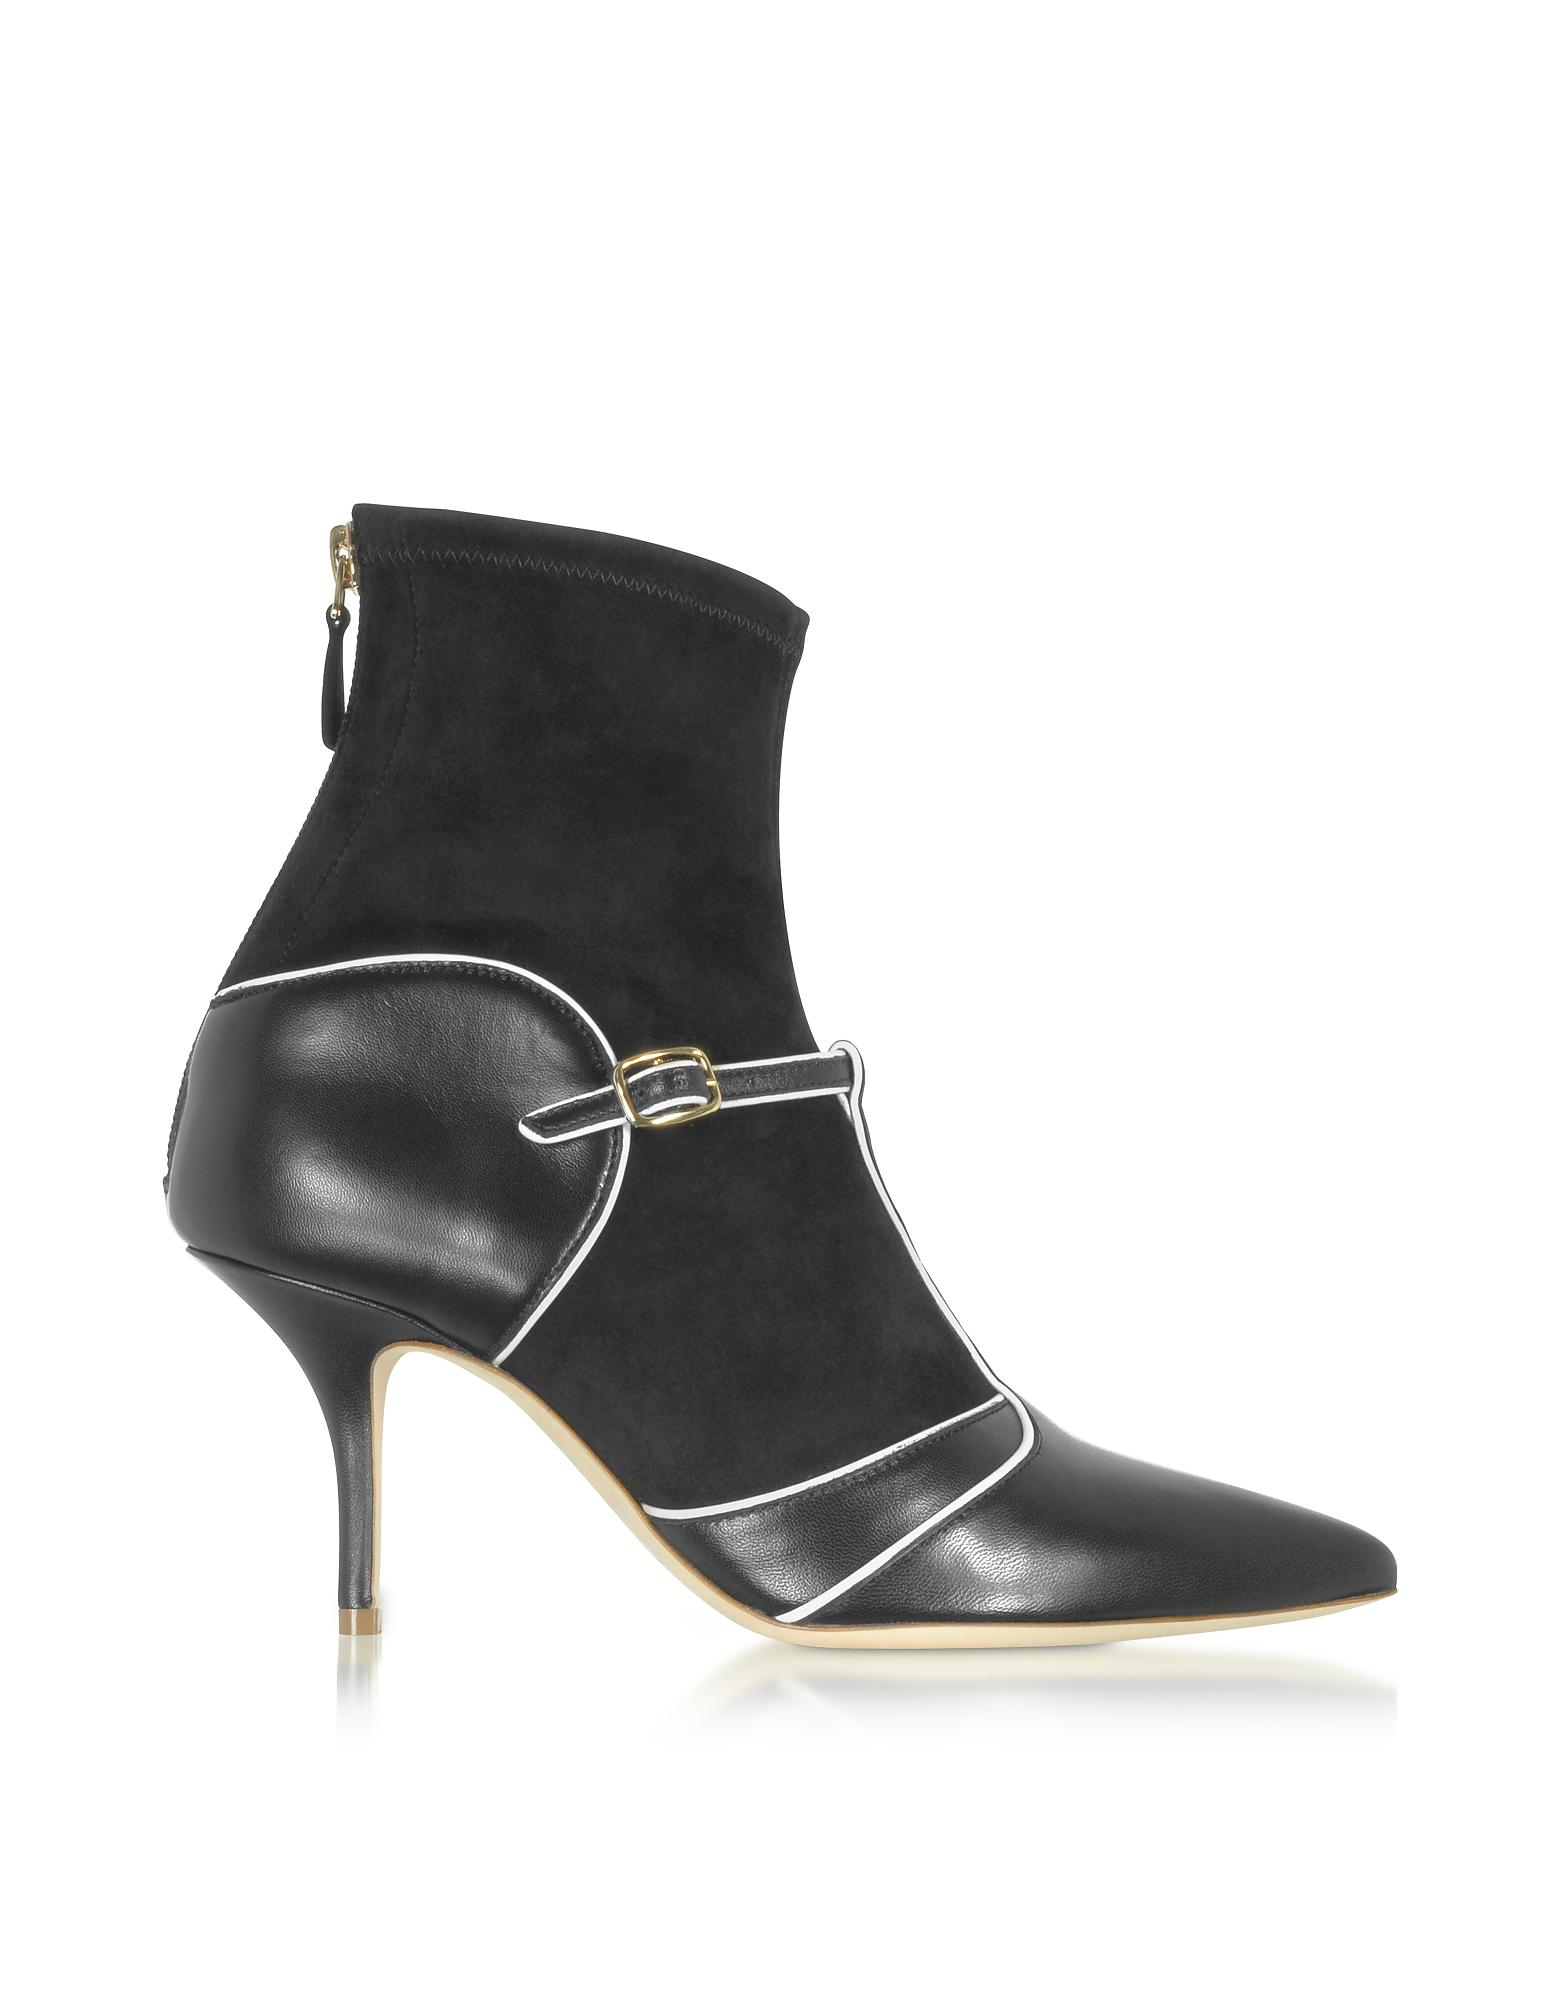 MALONE SOULIERS Designer Shoes, Color Block Nappa Leather and Stretch Suede Montana Bootie